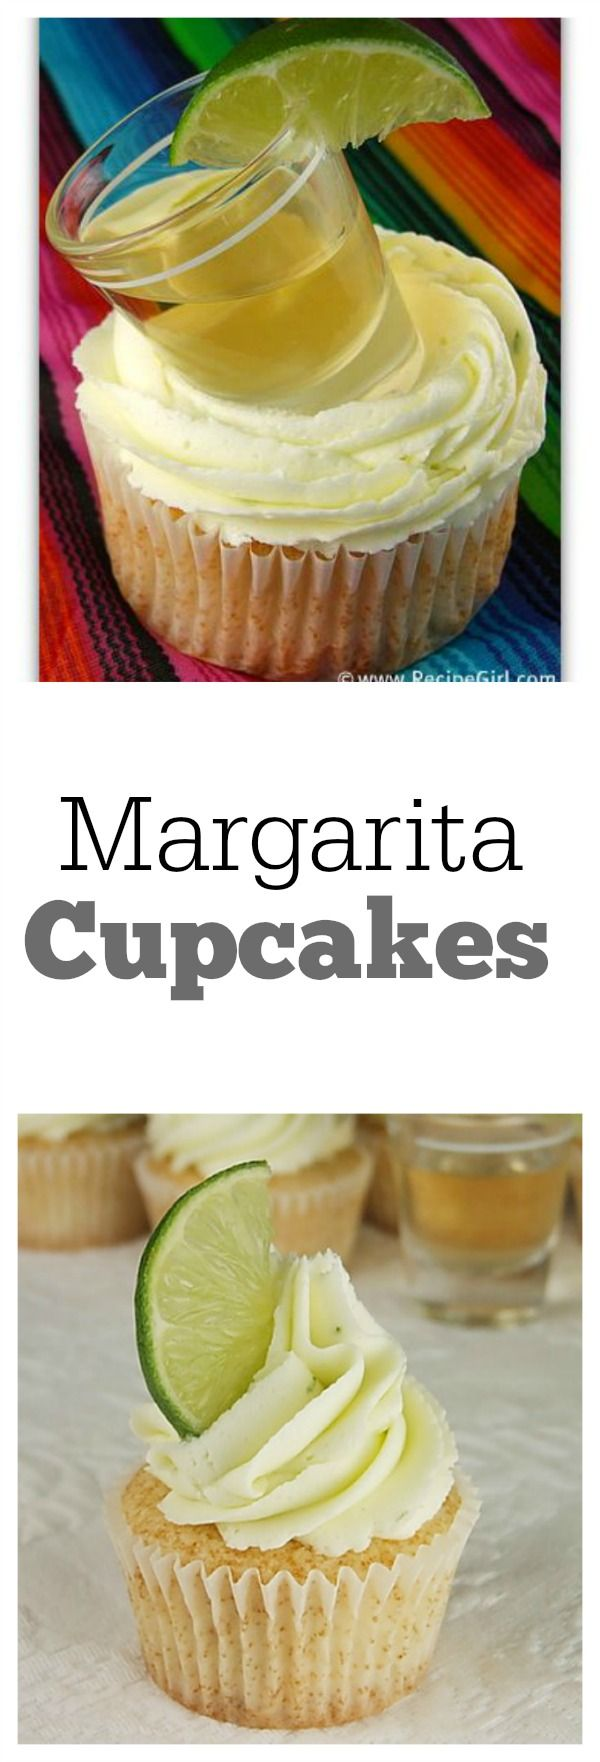 Margarita Cupcakes #recipe, with (or without) a shot of tequila :)